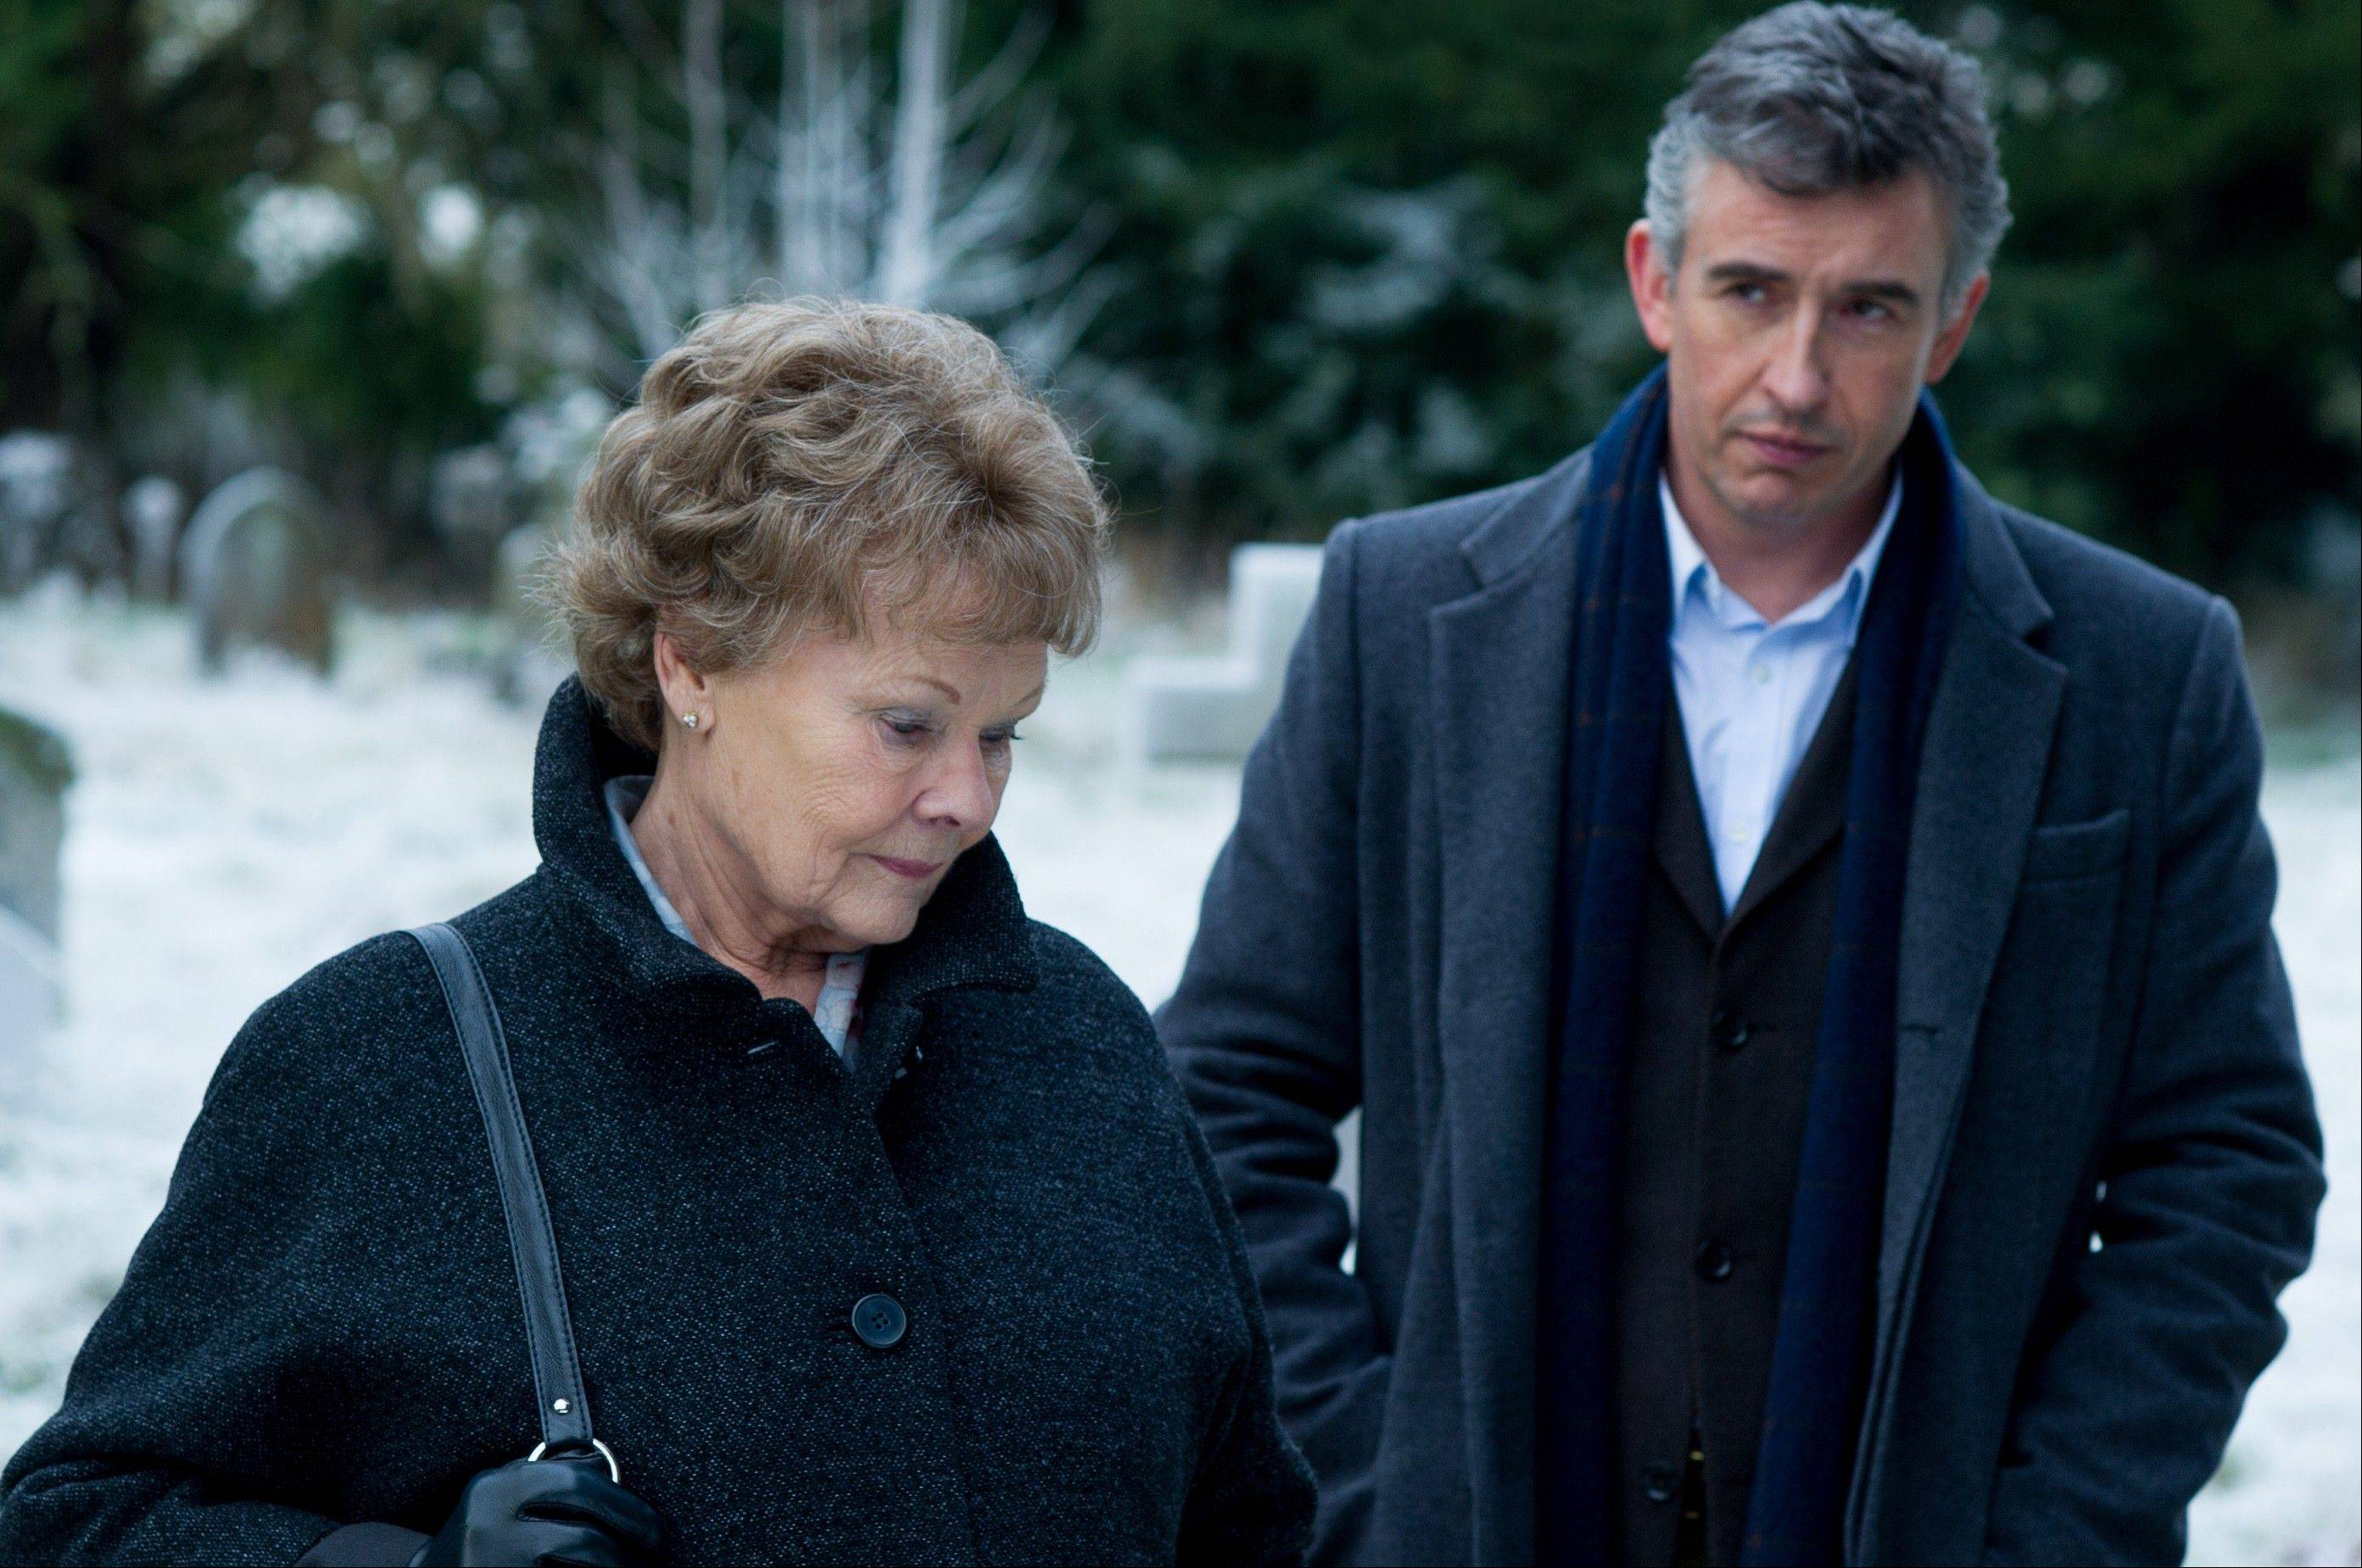 "Judi Dench, left, and Steve Coogan in ""Philomena."" The British comic and Oscar-winning actress co-star in the film, which explores the benefits and costs of faith through the true story of Philomena Lee."